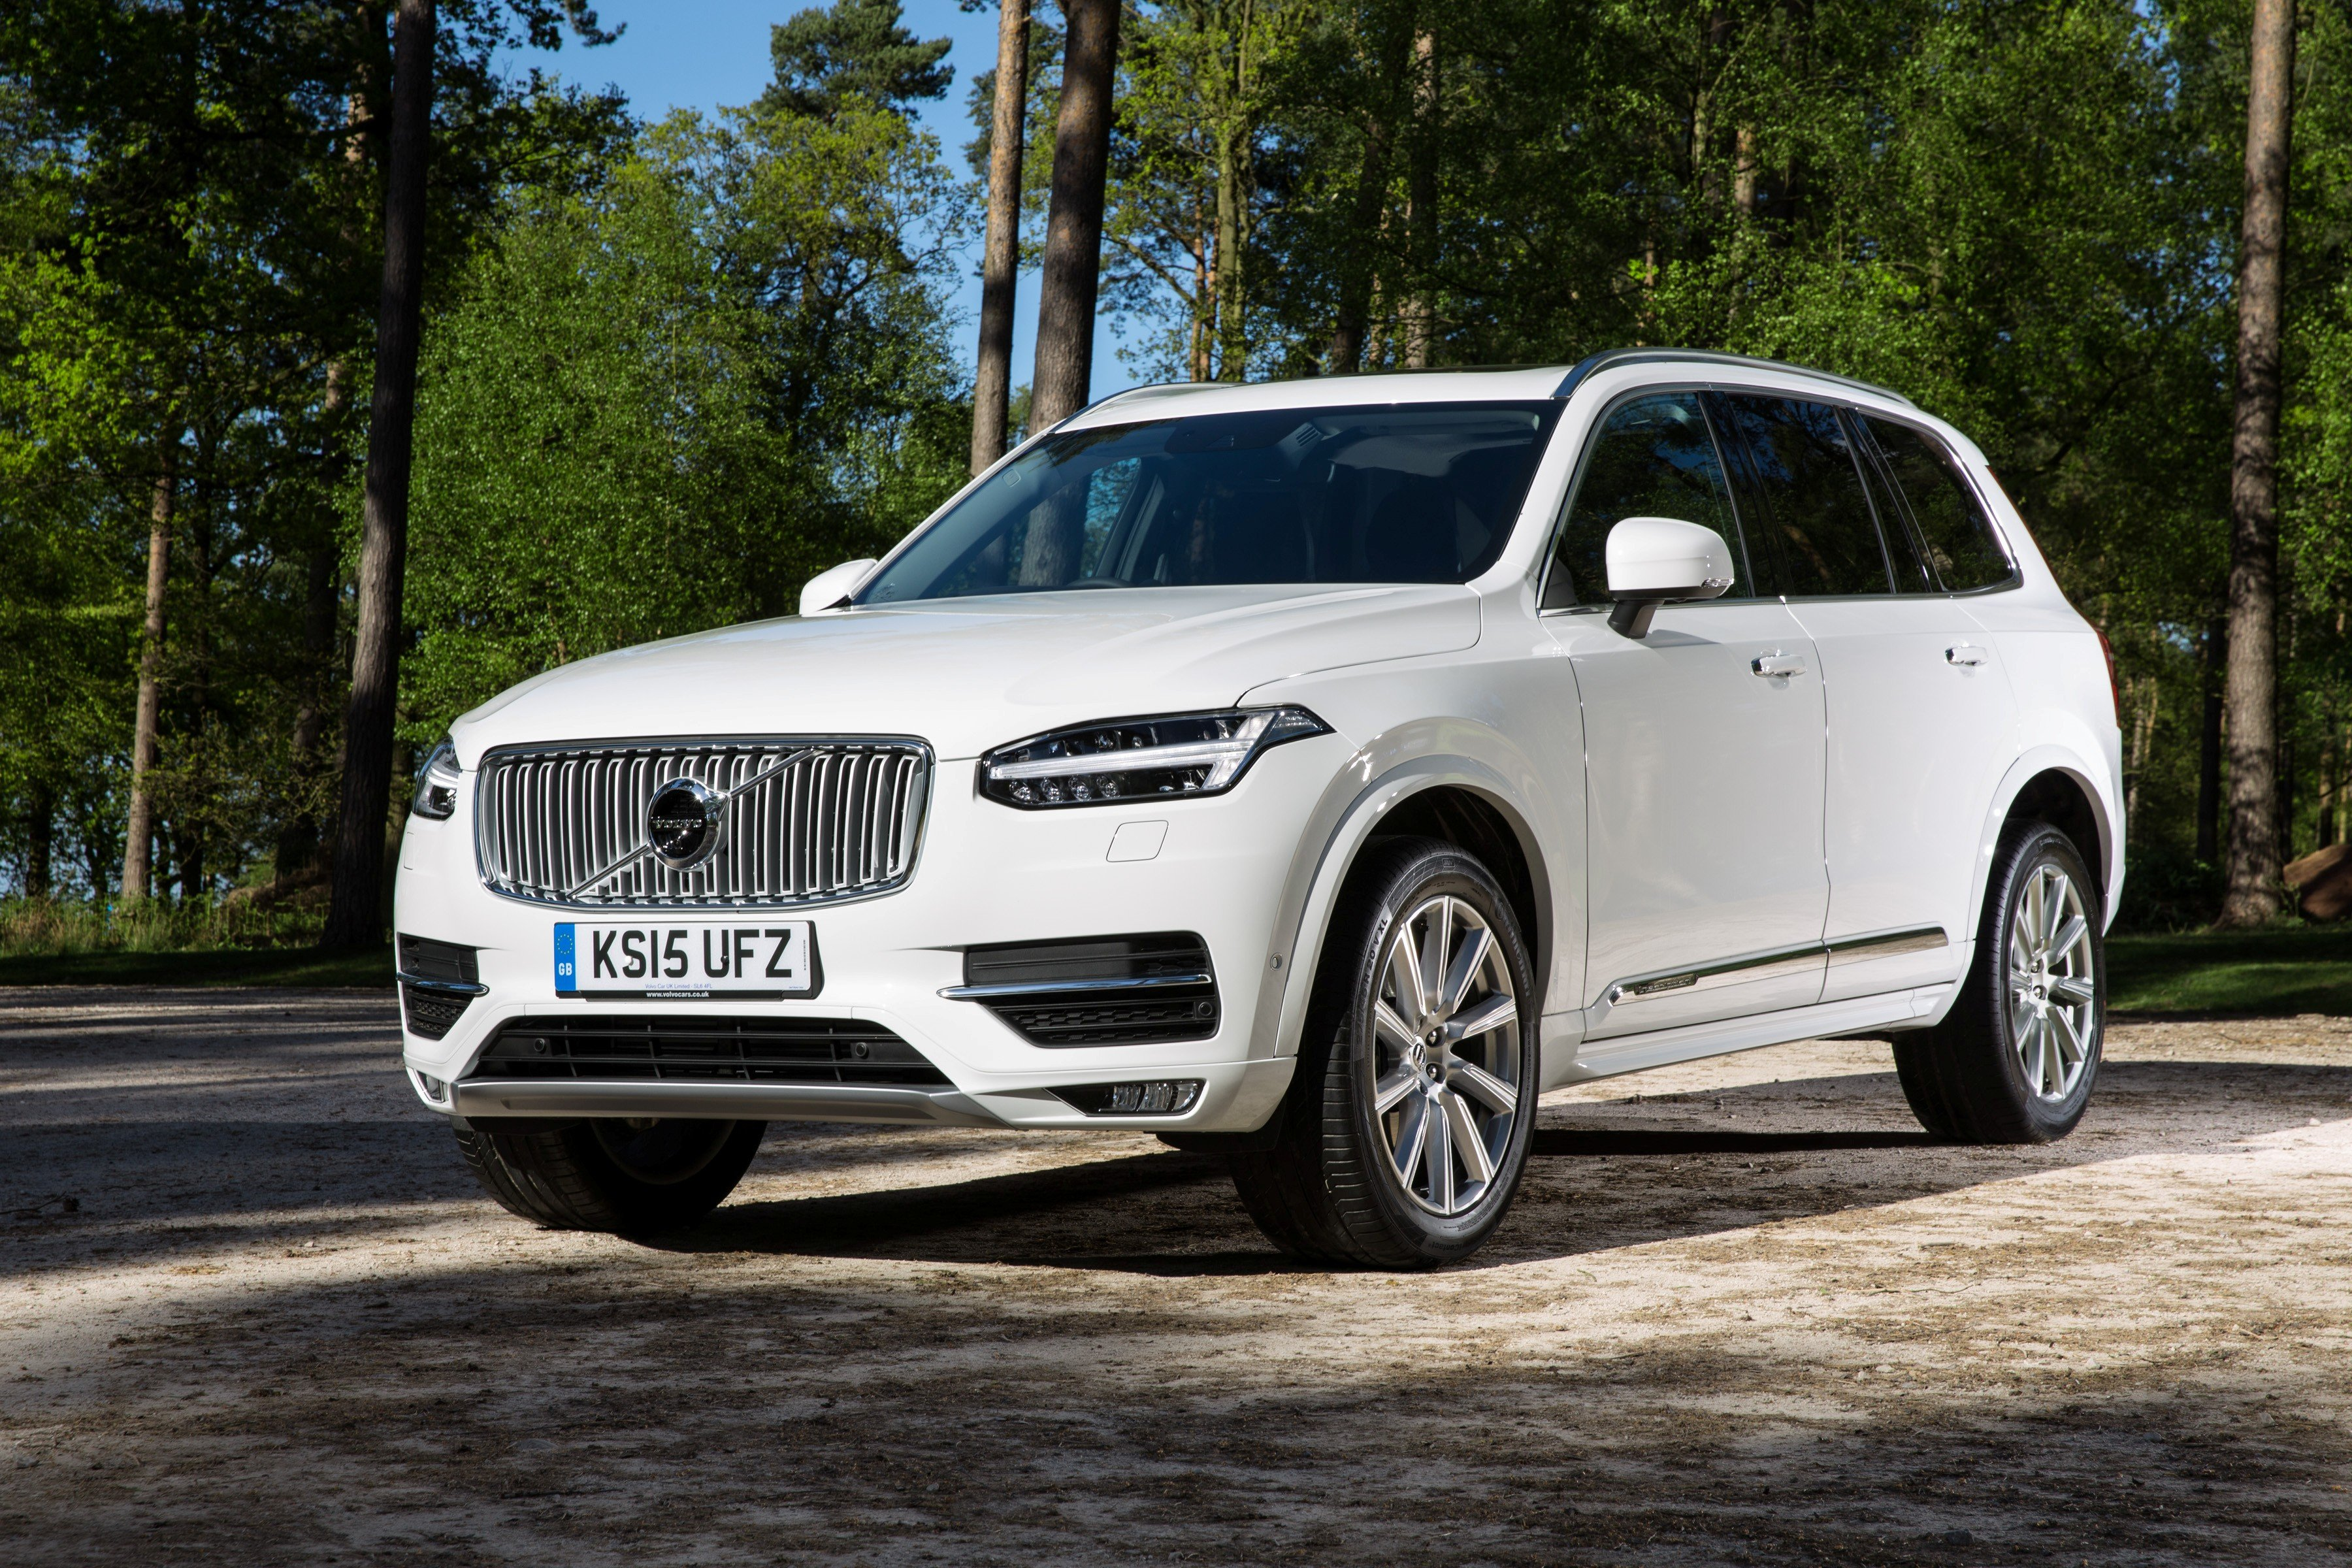 volvo xc90 d5 inscription uk spec 2015 cars suv white wallpaper 3600x2400 718052 wallpaperup. Black Bedroom Furniture Sets. Home Design Ideas